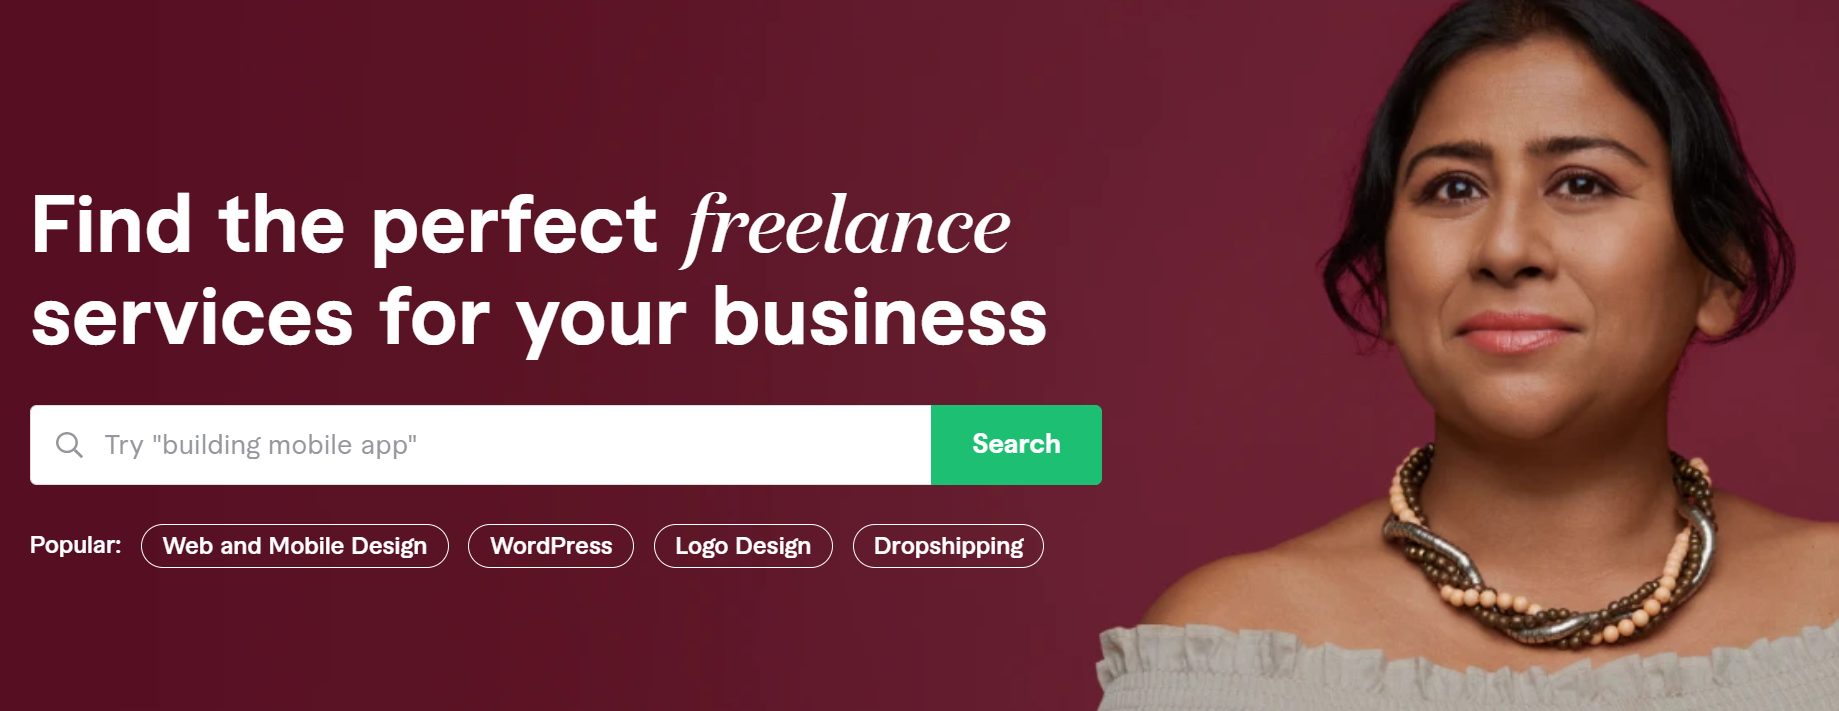 Up To £20 FREE With Fiverr